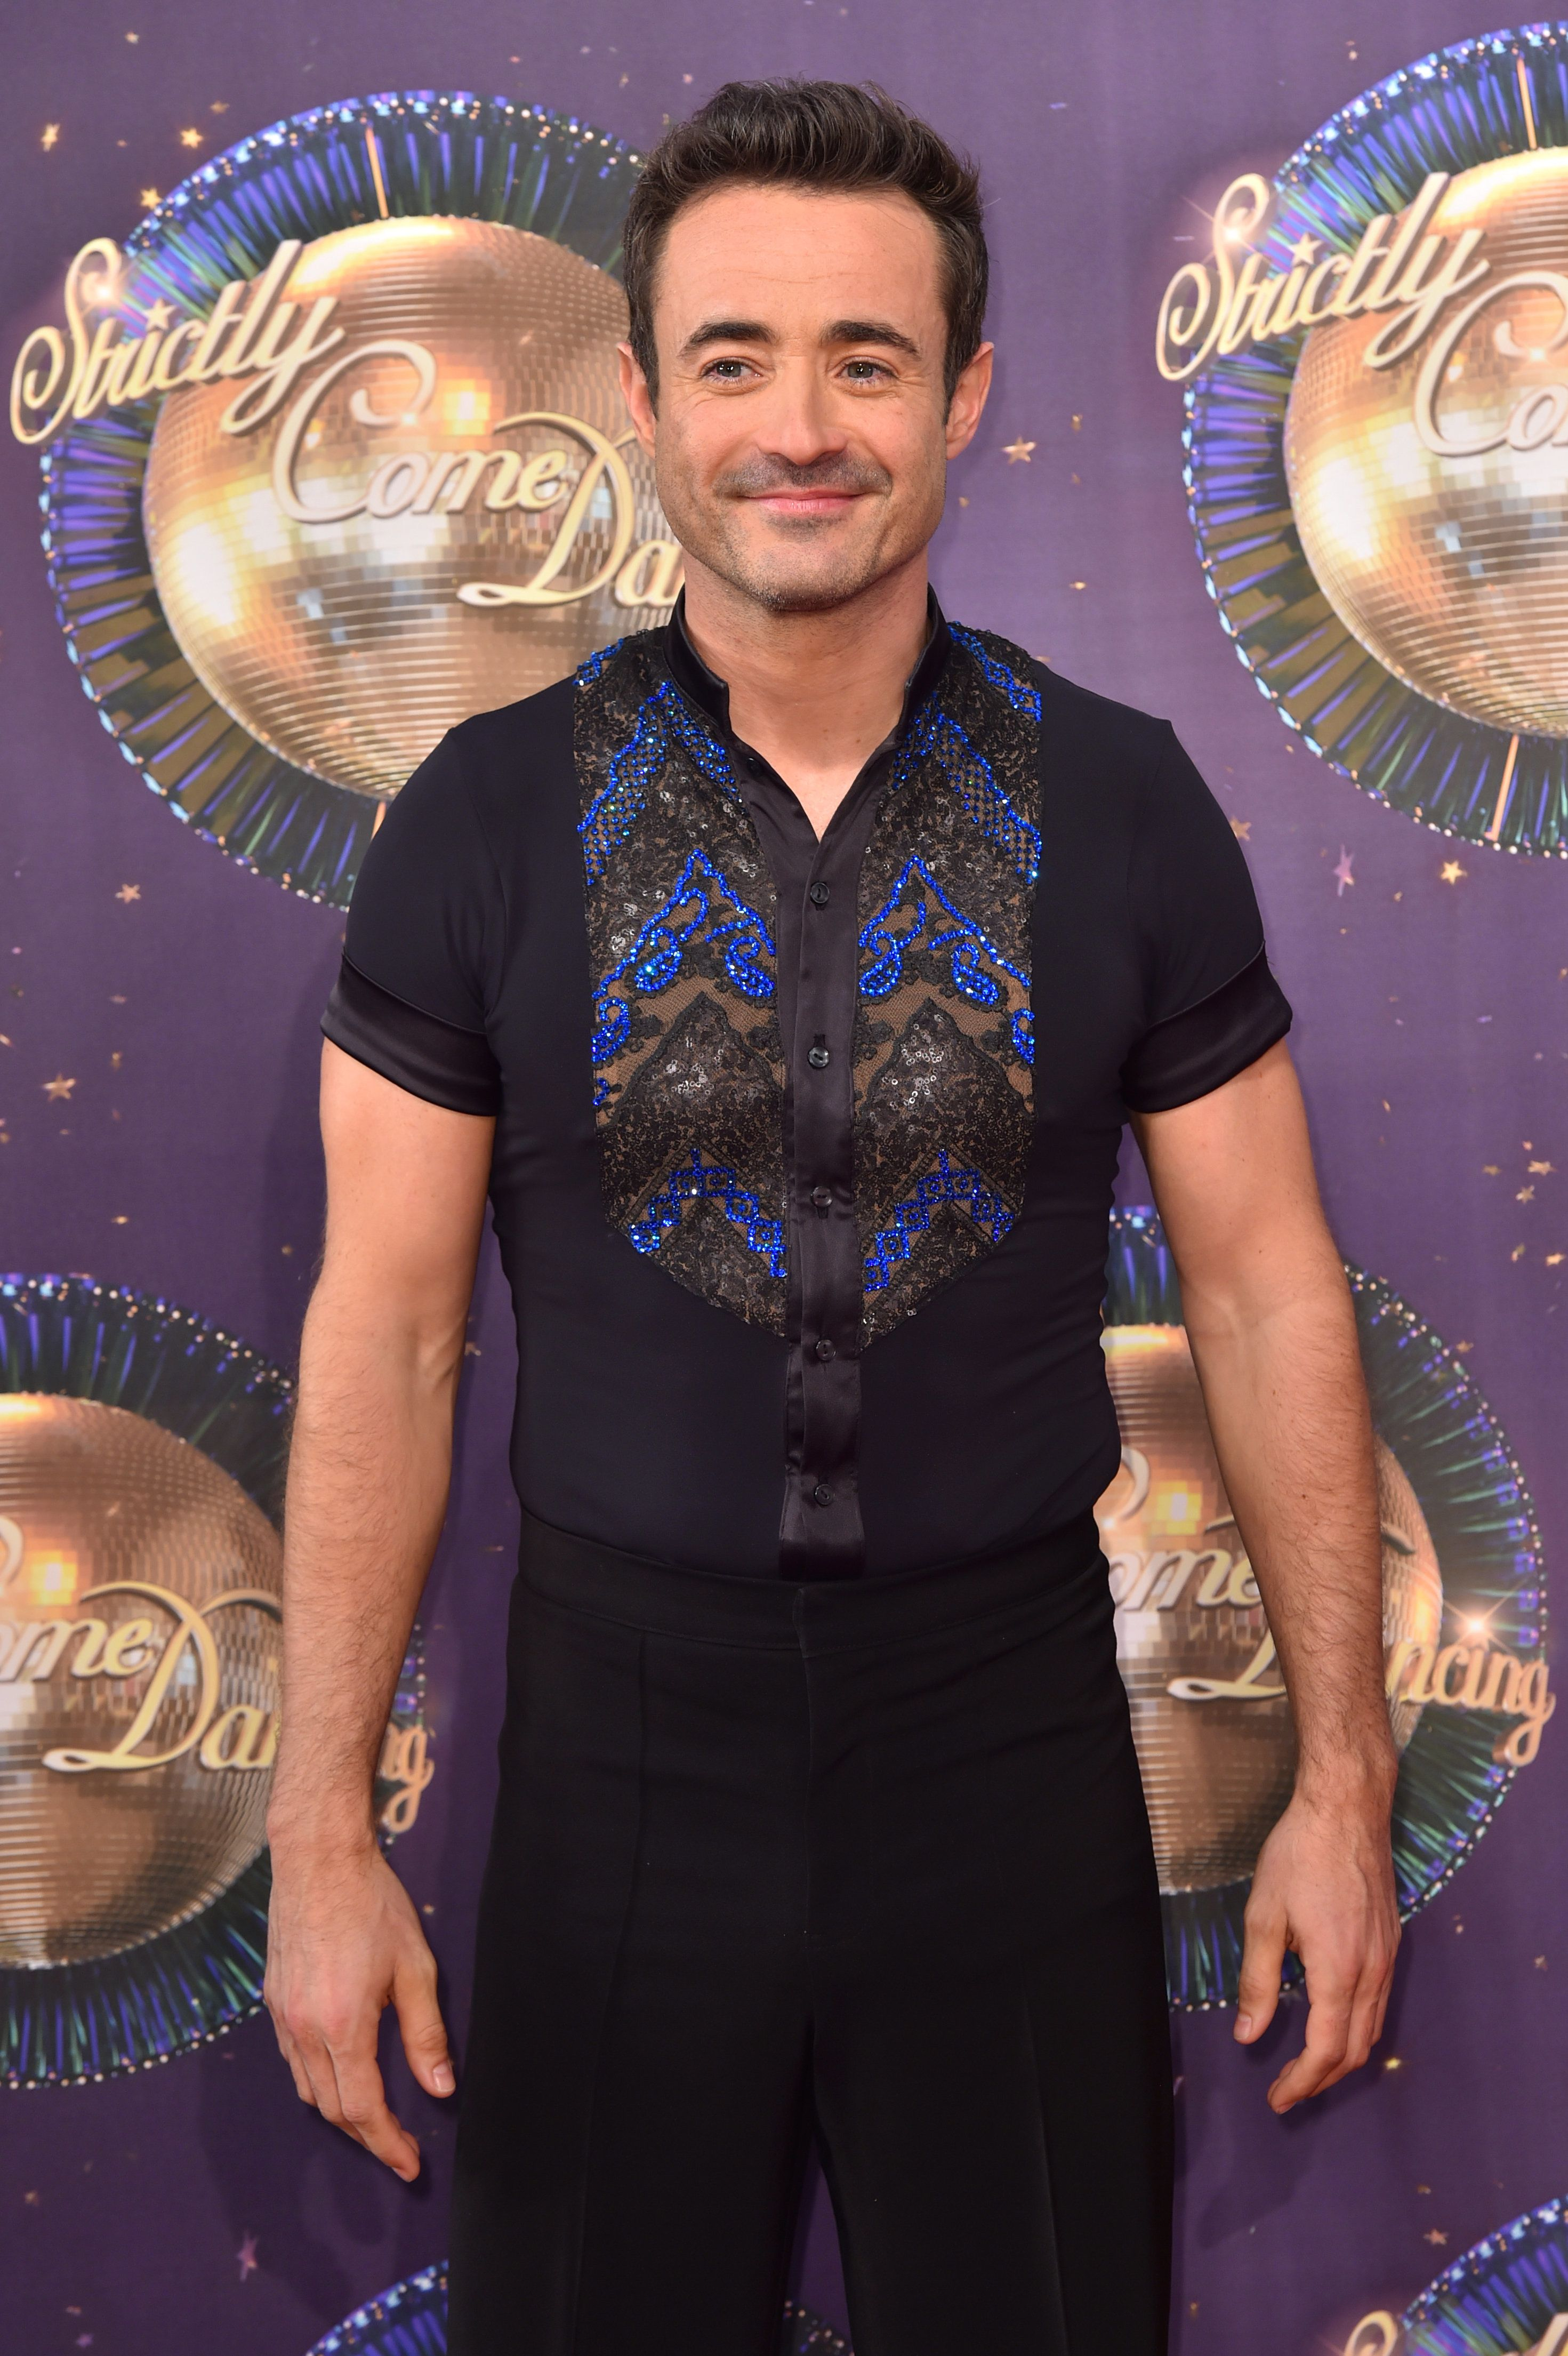 Reigning 'Strictly' Champion Joe McFadden Defends This Year's